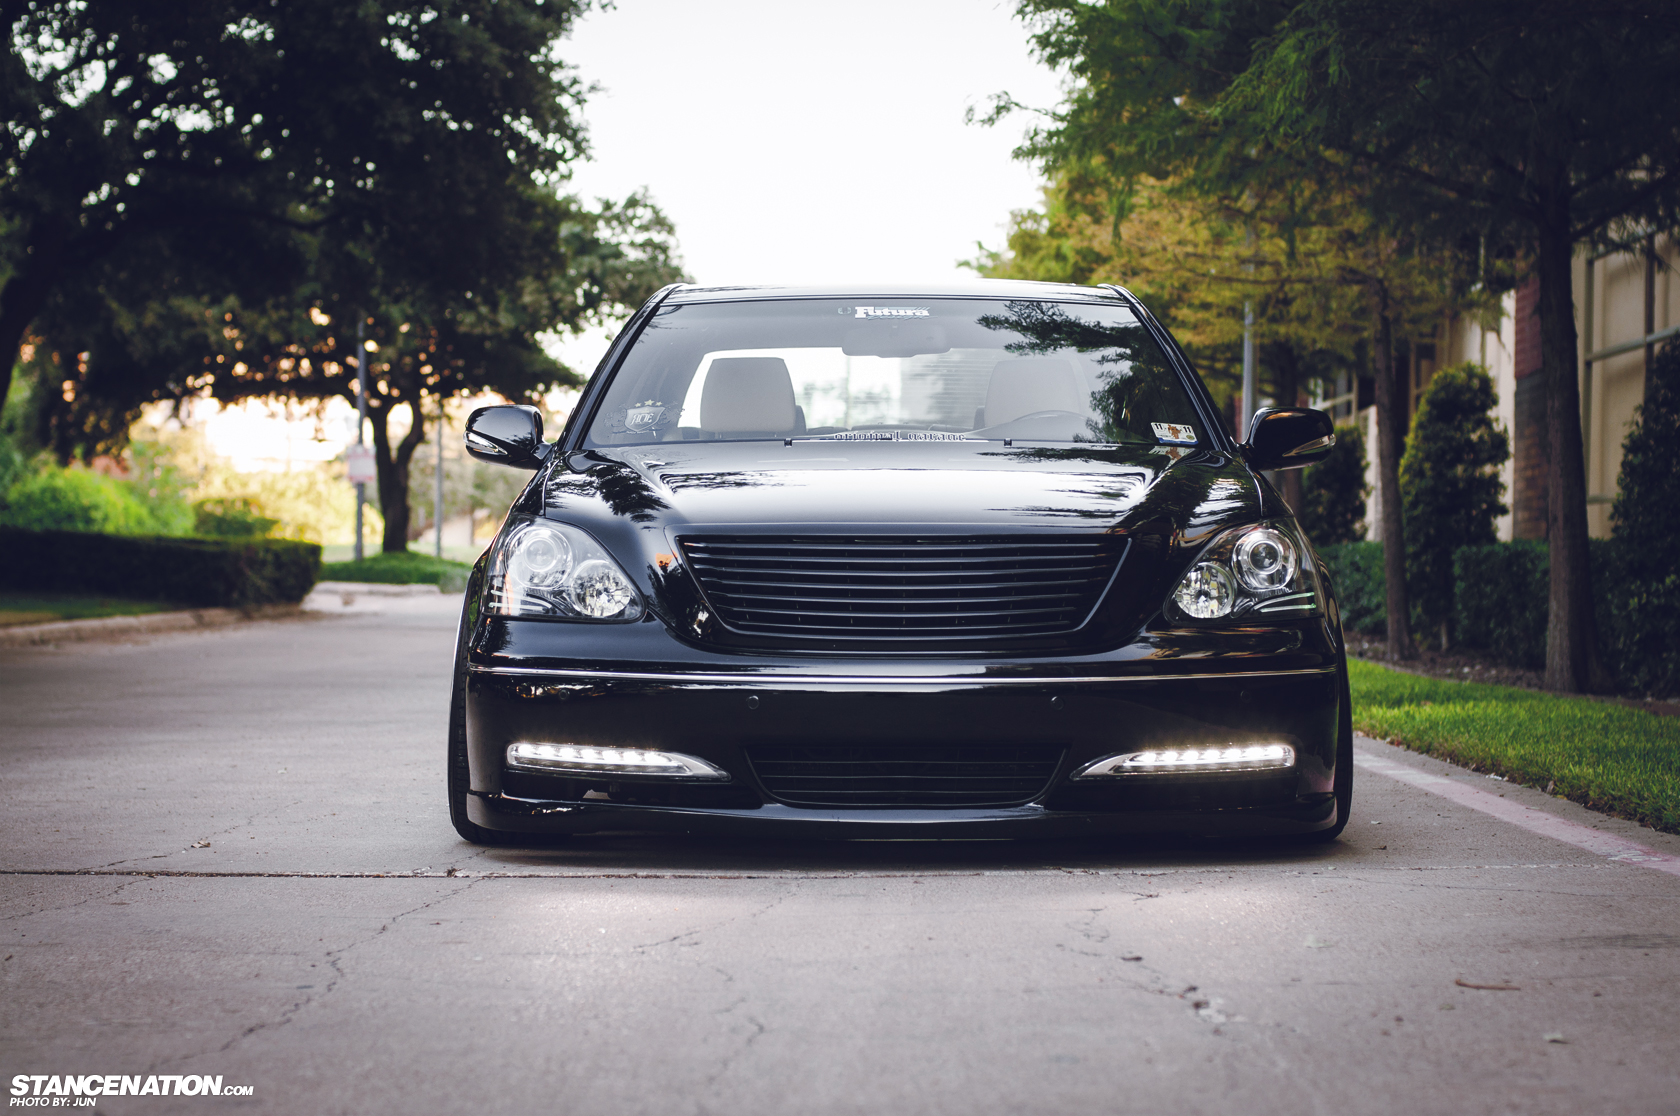 http://www.stancenation.com/wp-content/uploads/2012/11/914.jpg